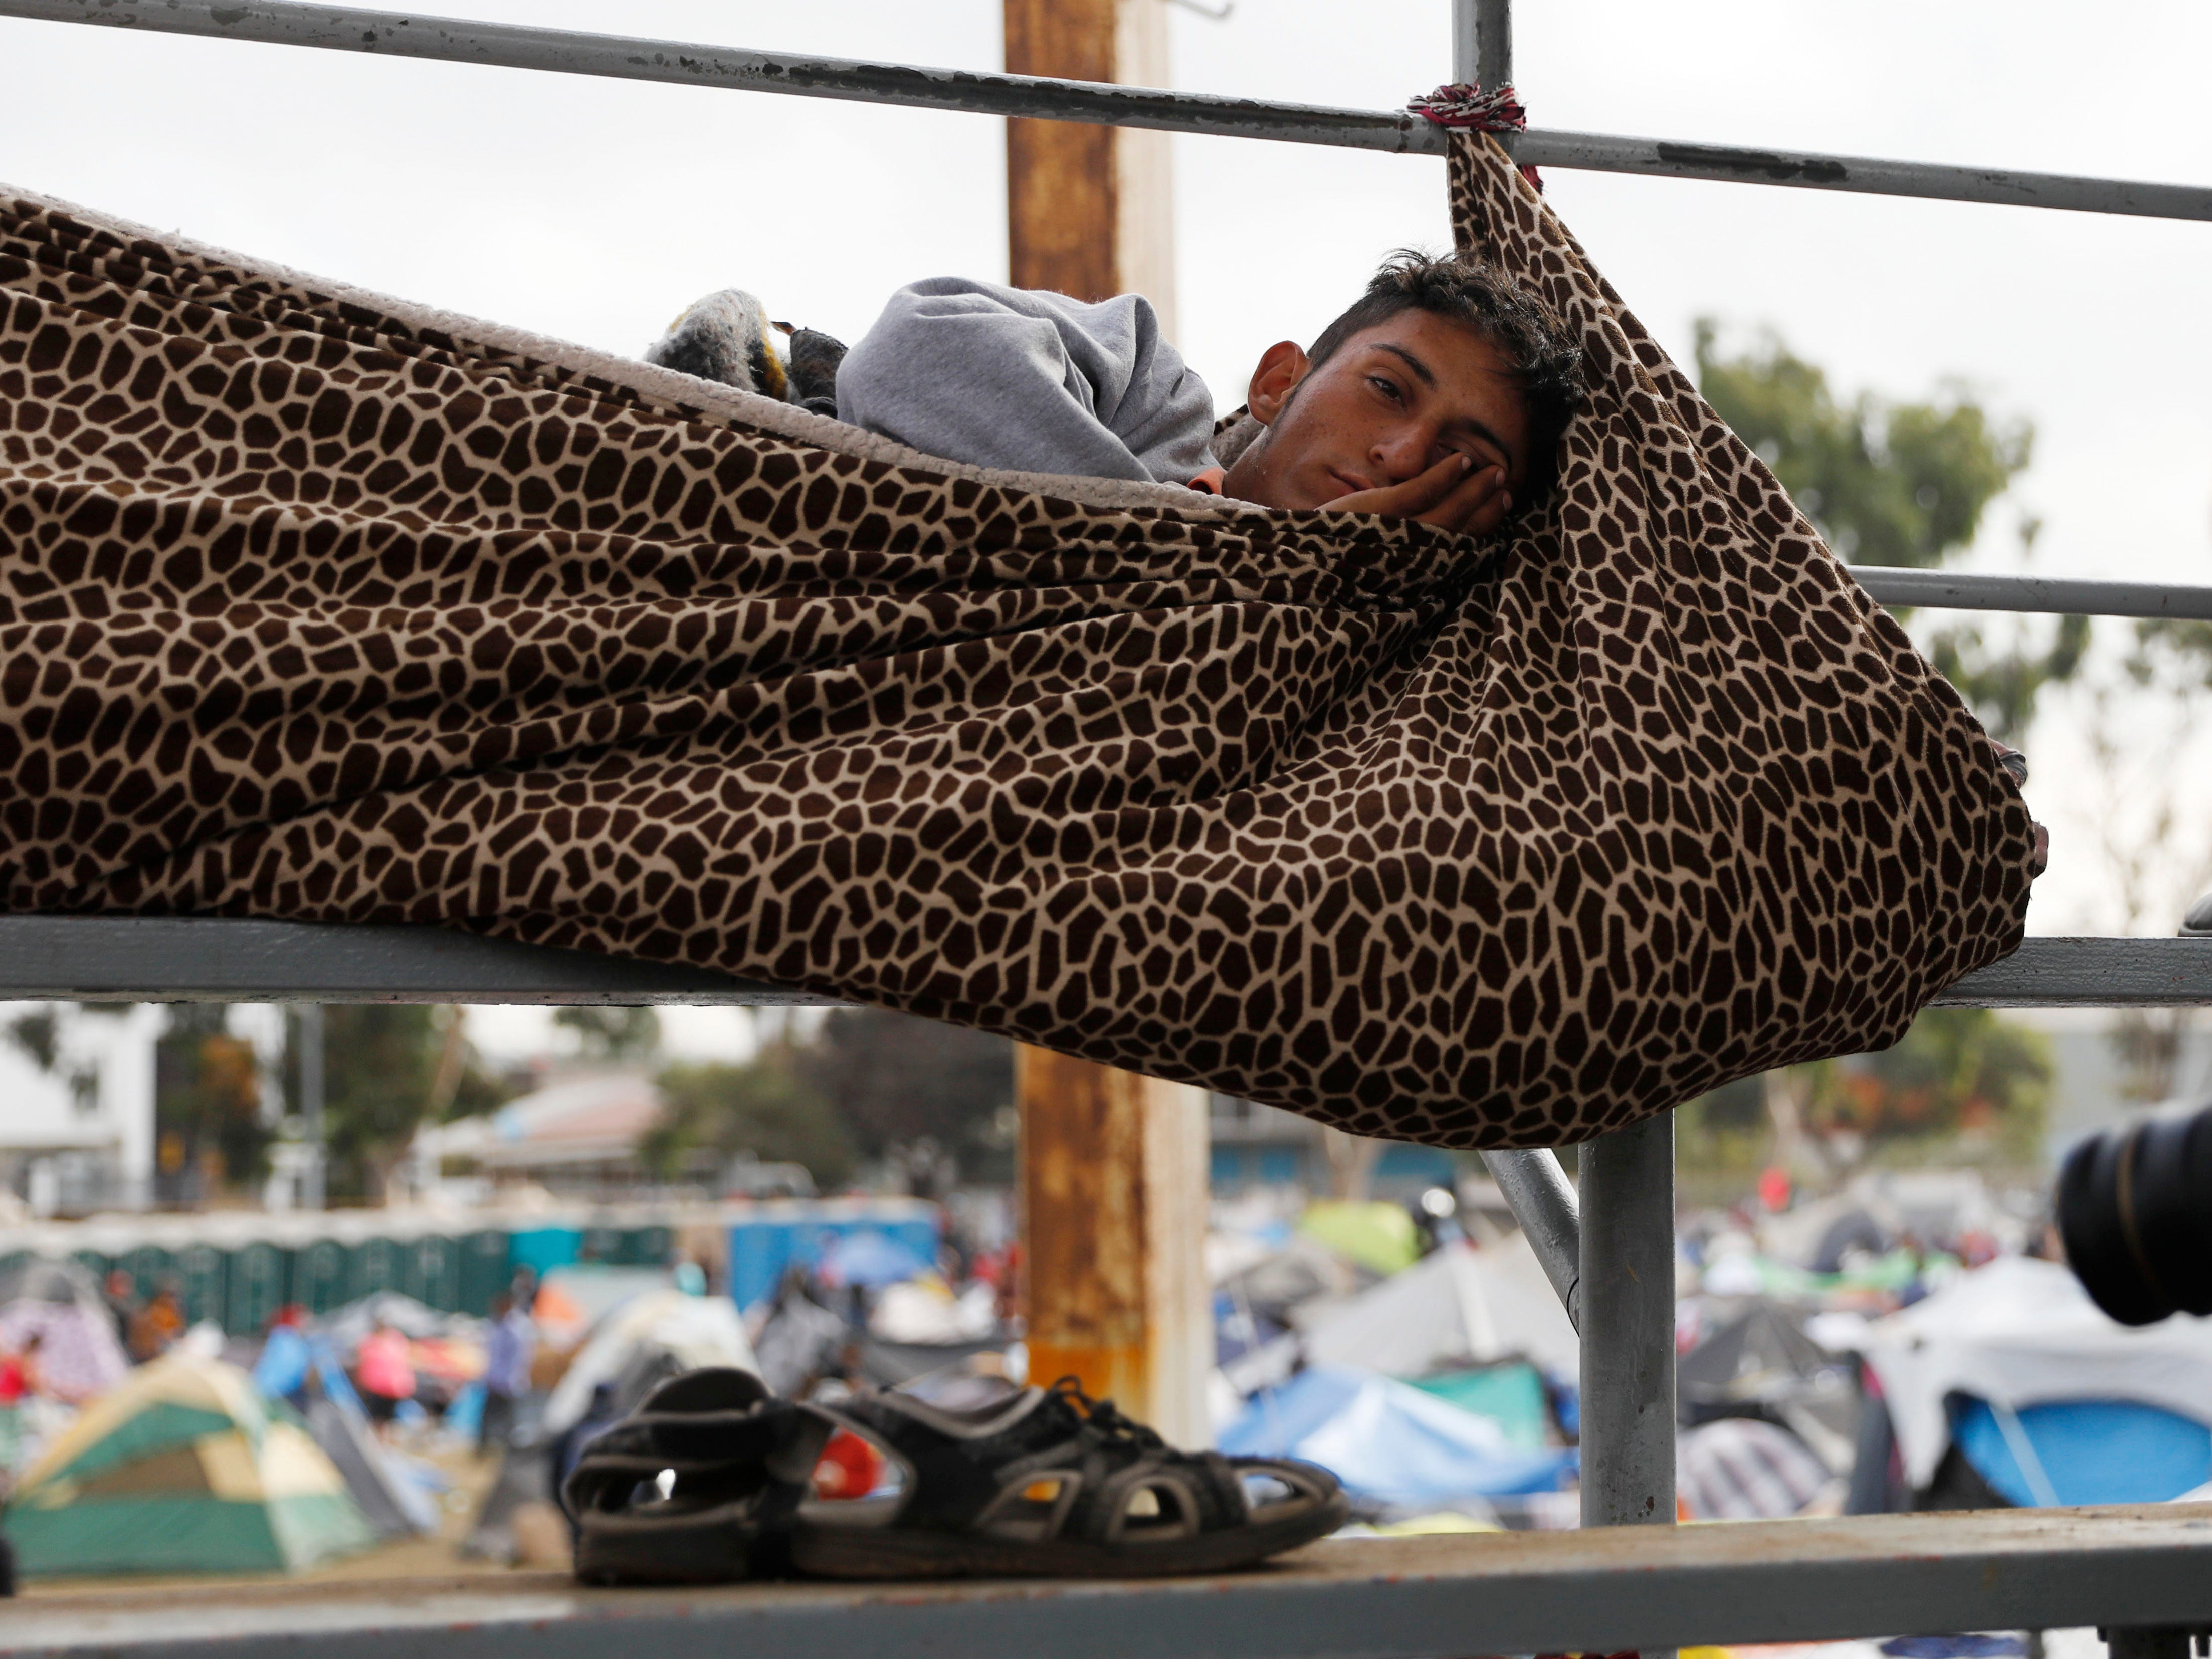 A migrant rests inside a blanket cocoon tied to keep him from rolling off the spectator stands while sleeping, at a sports complex  on Nov. 28, 2018, where more than 5,000 Central American migrants are sheltering, in Tijuana, Mexico.